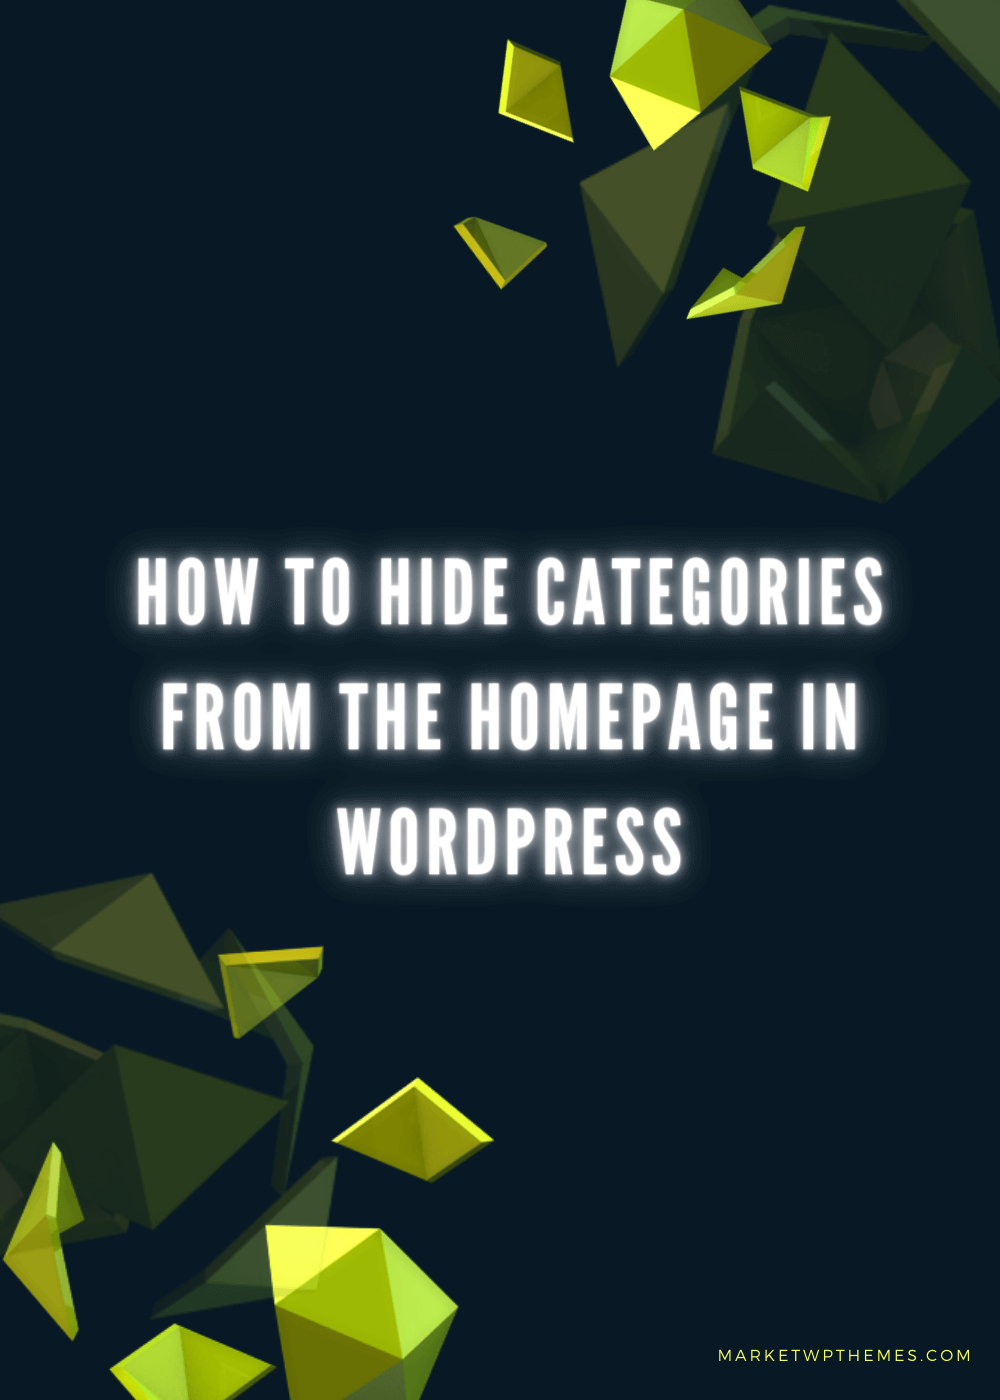 How To Hide Categories From The Homepage In WordPress